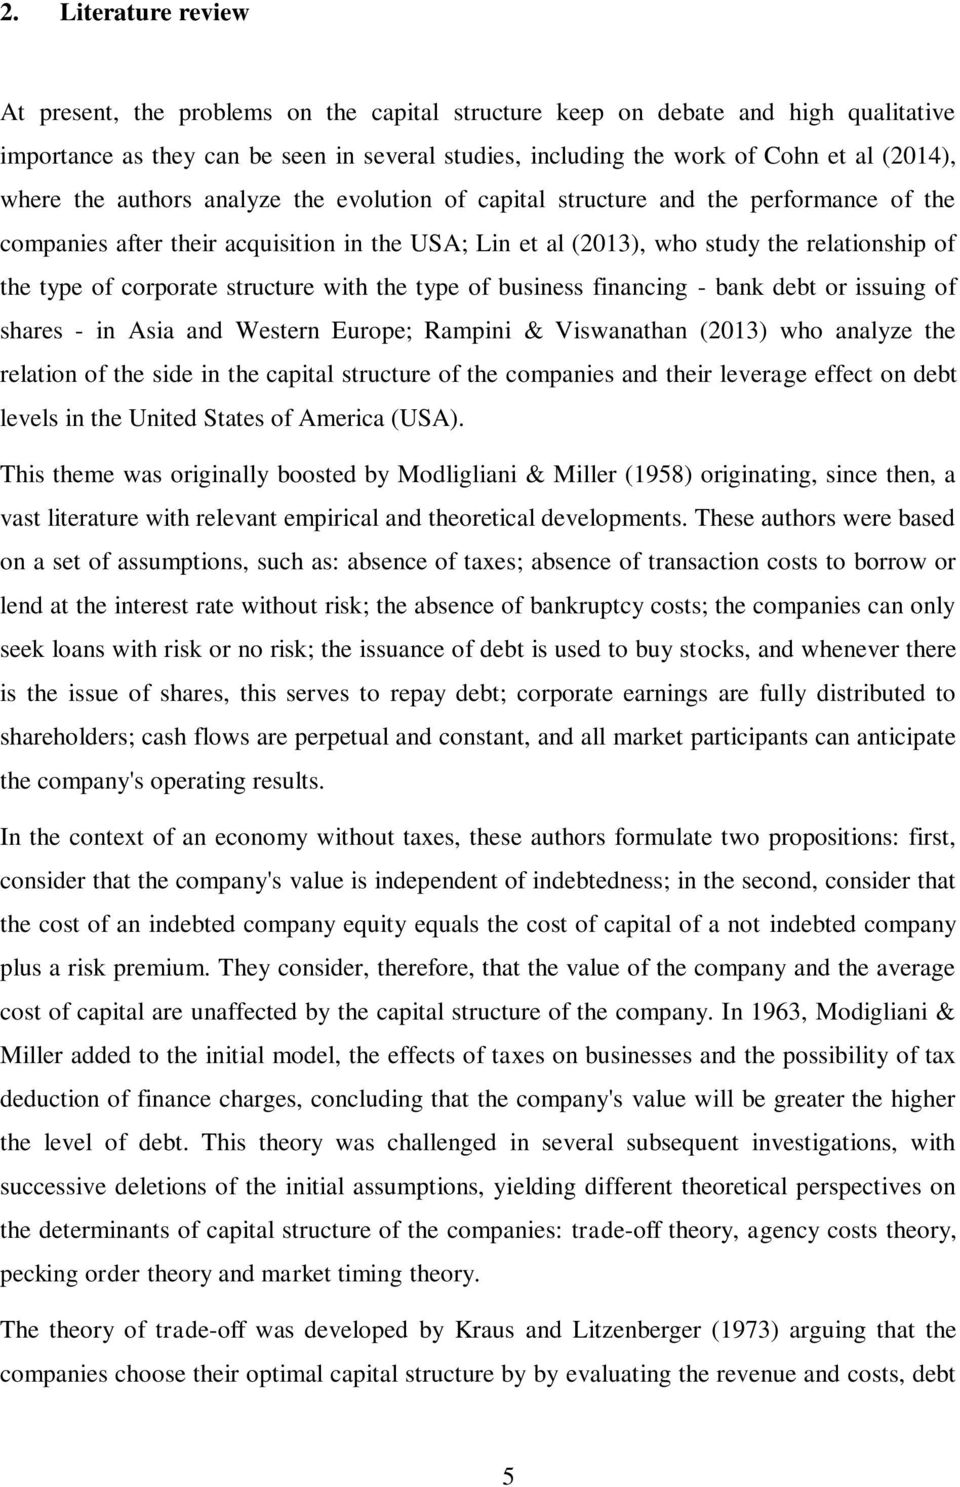 corporate structure with the type of business financing - bank debt or issuing of shares - in Asia and Western Europe; Rampini & Viswanathan (2013) who analyze the relation of the side in the capital